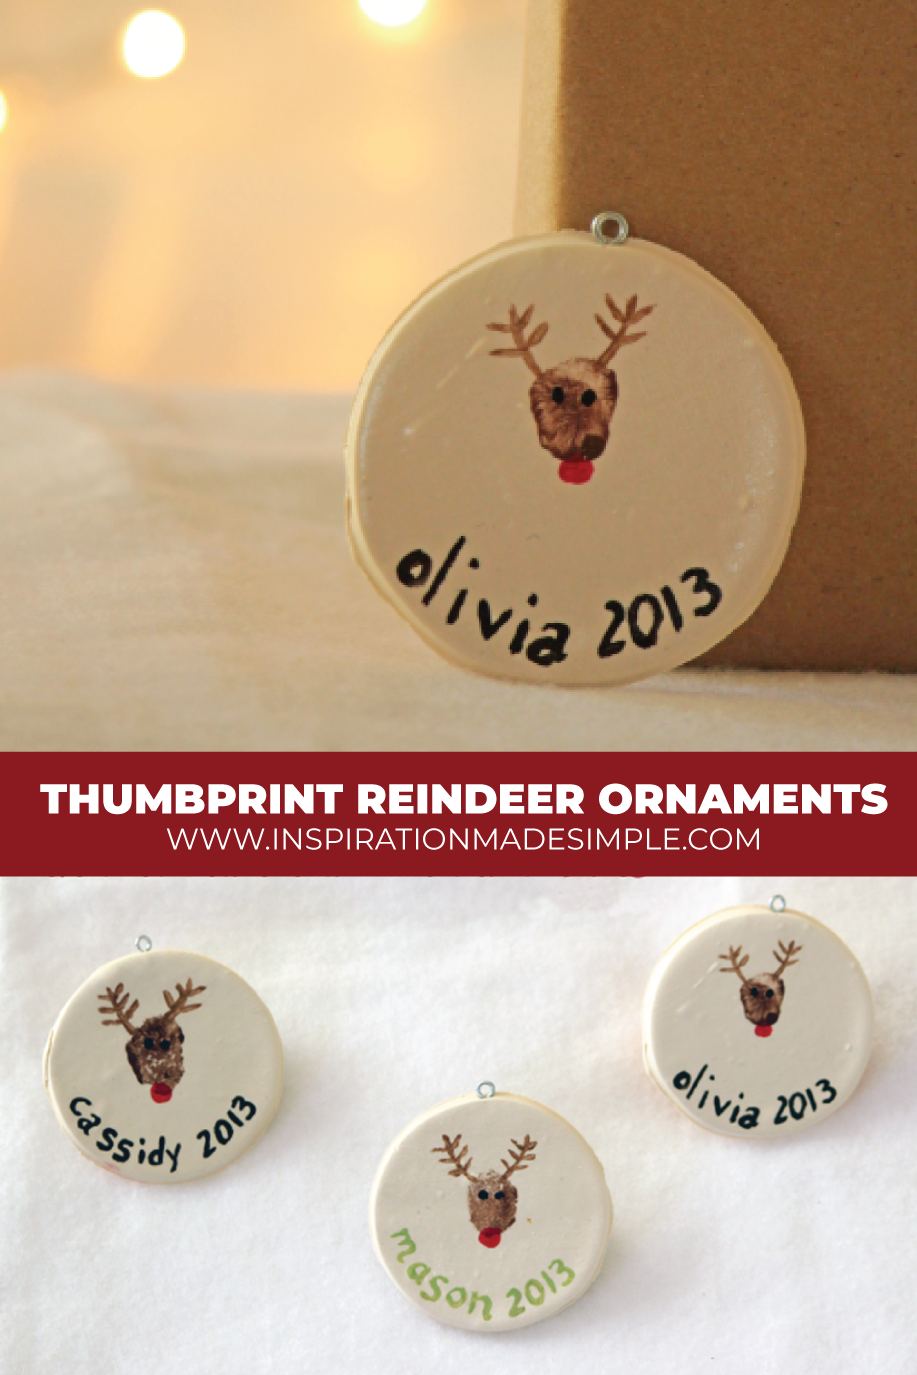 DIY Thumbprint Reindeer Ornaments with Clay and Acrylic Paint